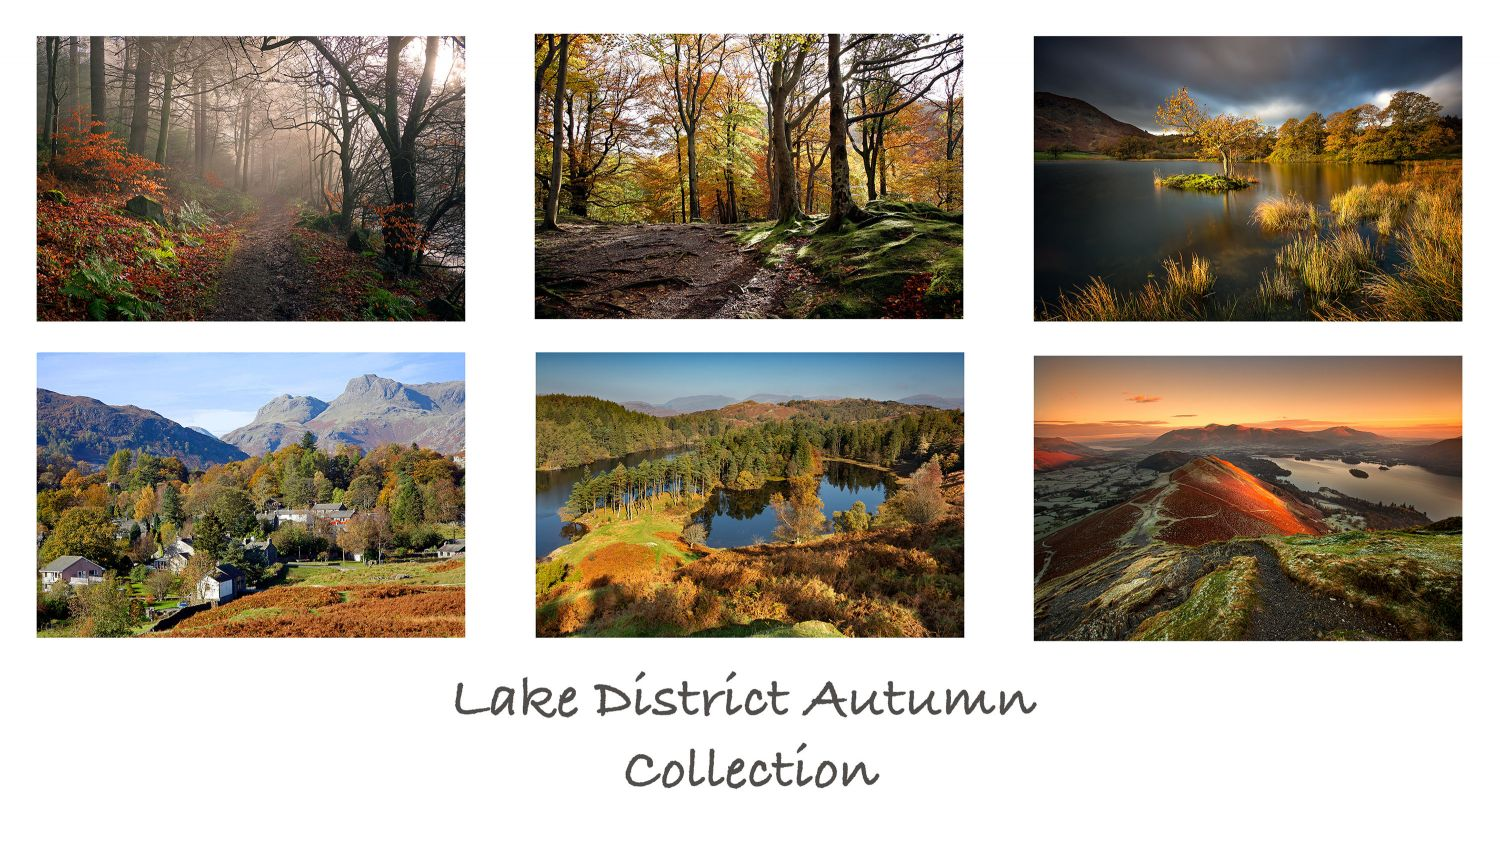 A pack of 6 Lake District Greeting Cards featuring stunning images of beautiful English Lake District autumn scenes at Bassenthwaite, Elterwater, Tarn Hows, Derwentwater and Grasmere.